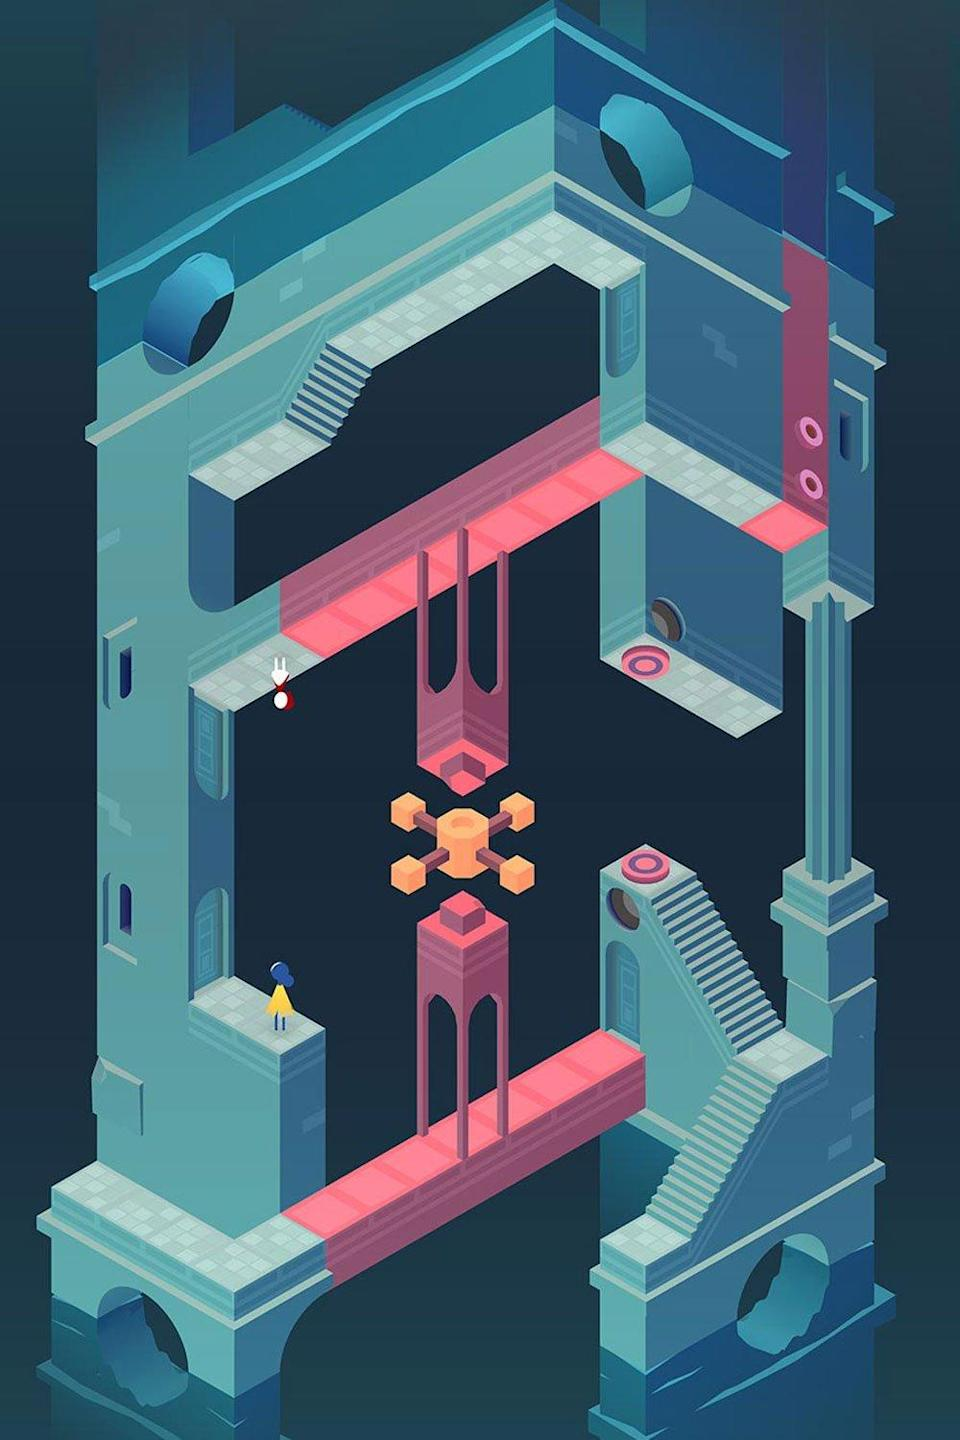 Monument Valley 2 is created by London-based studio ustwo (ustwo)